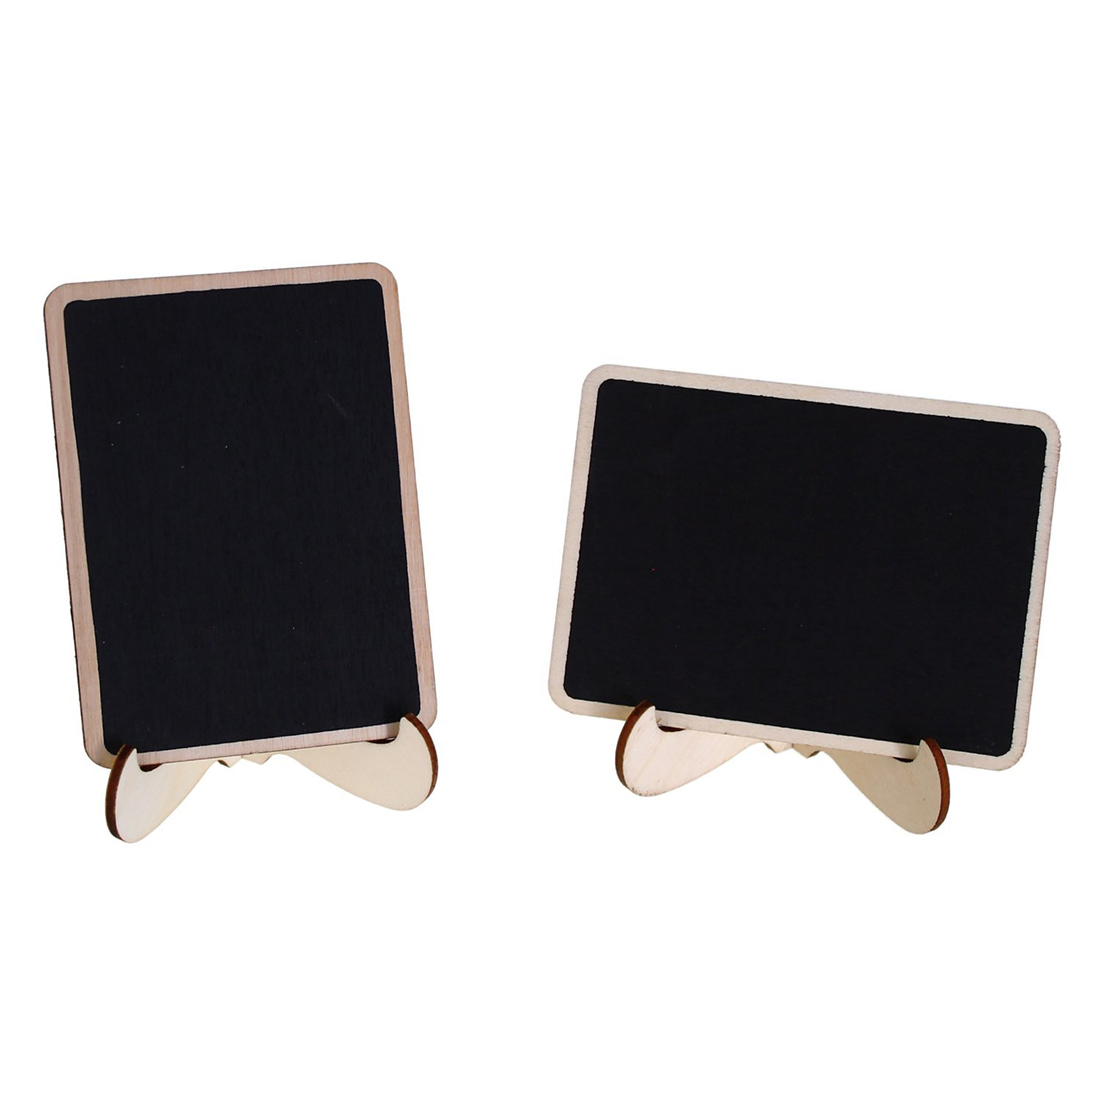 Mini Chalkboard Place Cards with Easel Stand and Chalk for Wedding, Parties, Table Top Numbers, Food Signs and Special Event D